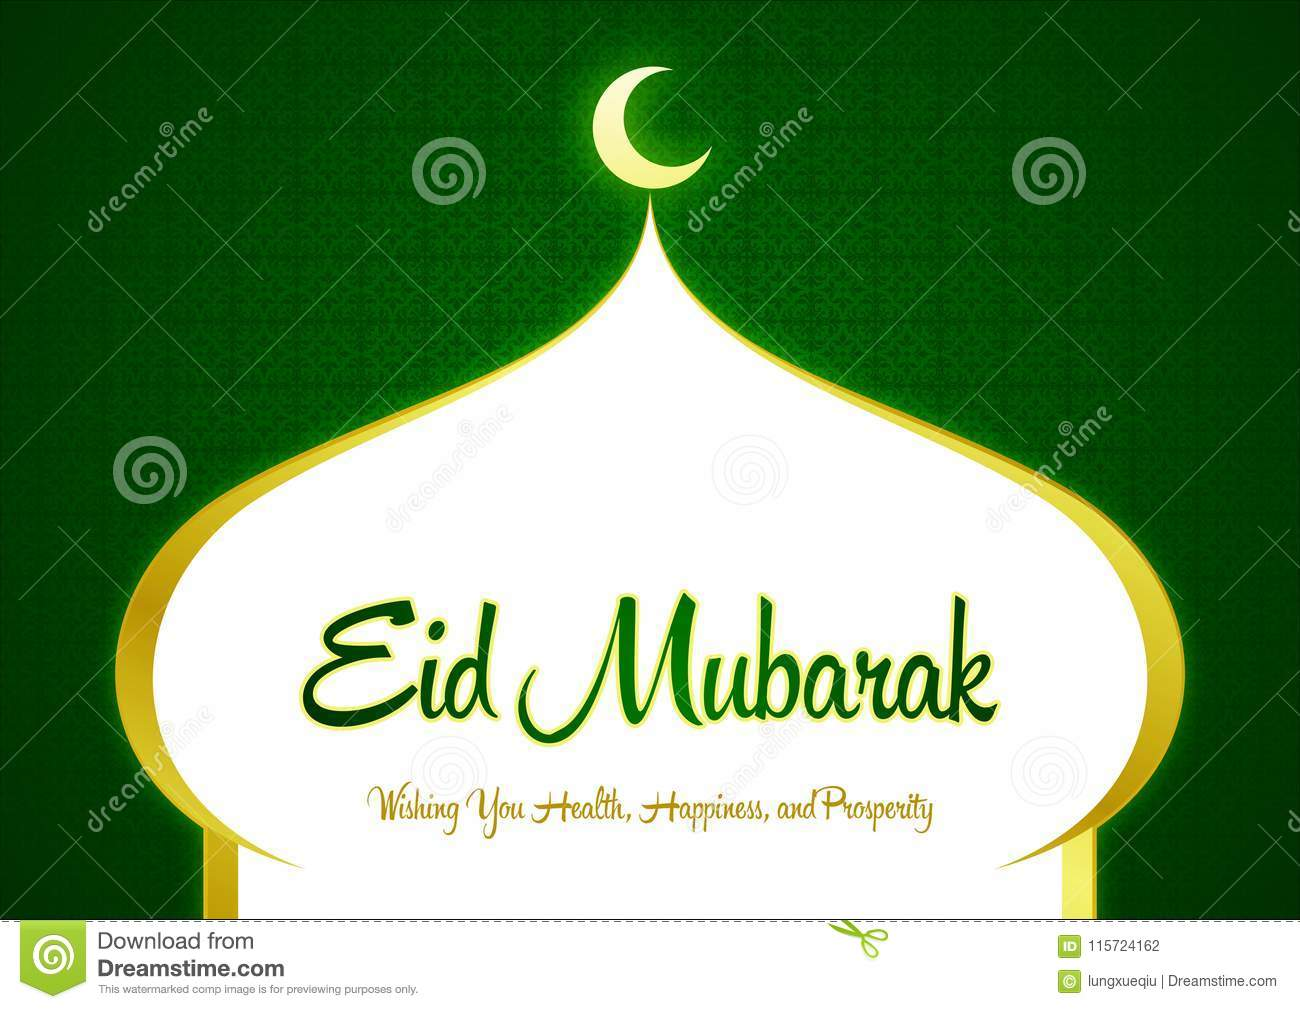 Eid Mubarak Ramadan Green Greeting Card Wishes Illustration Islamic Celebration And With